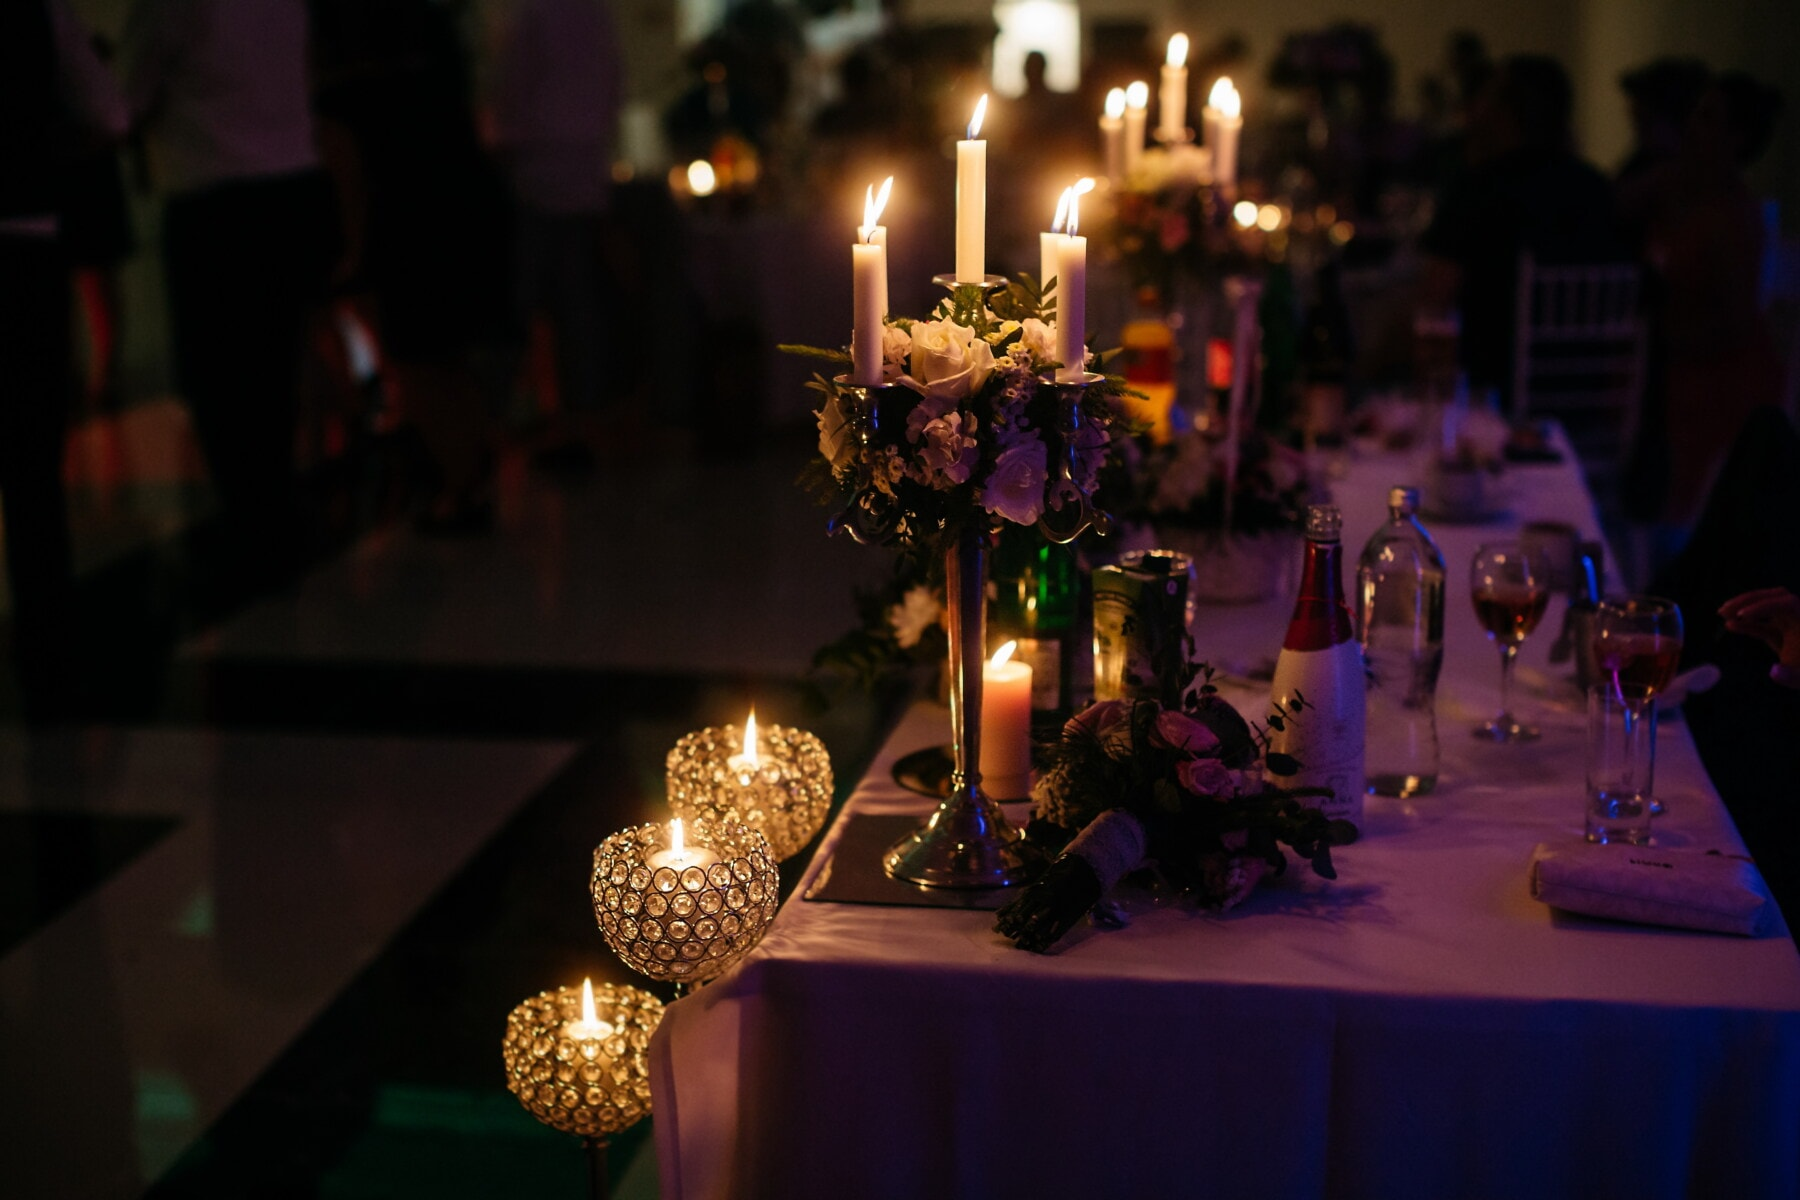 candlelight, dinner table, evening, candles, fancy, candlestick, hotel, celebration, candle, people